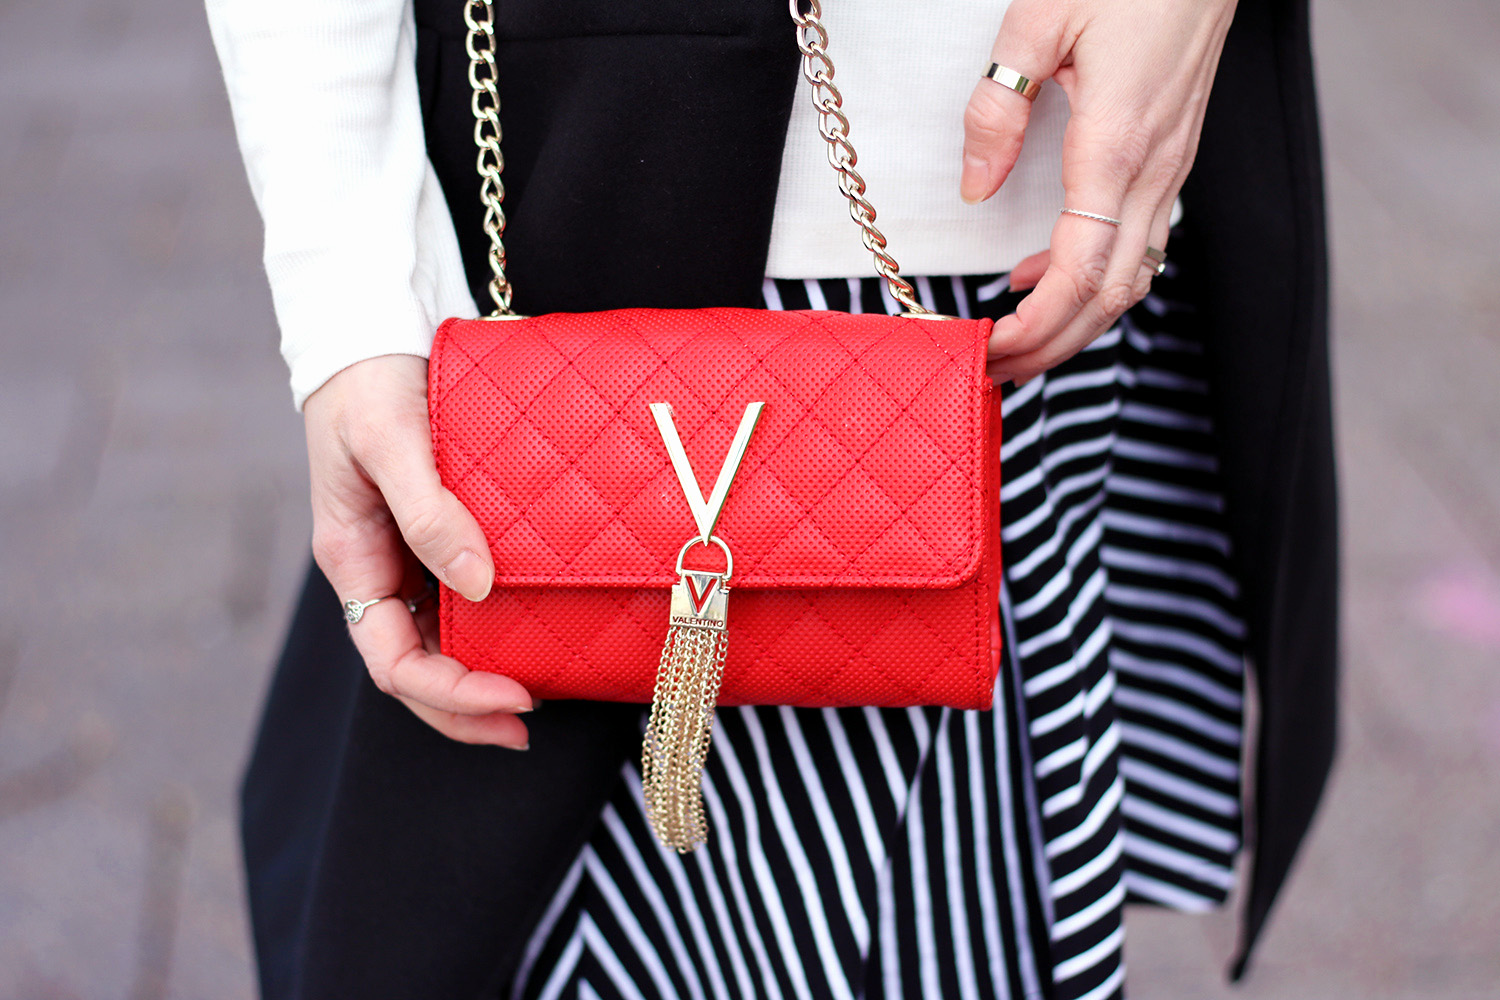 Tasche, Rot, Valentino, ZALON Styling Challenge, Mode-Experte, Frühling, Mode, Mustermix, Outfit, Streetstyle, blonde Haare, helle Haut, Influencer, Deutschland, Berlin, Streetstyle, Mode Blog, Advance Your Style, advanceyourstyle